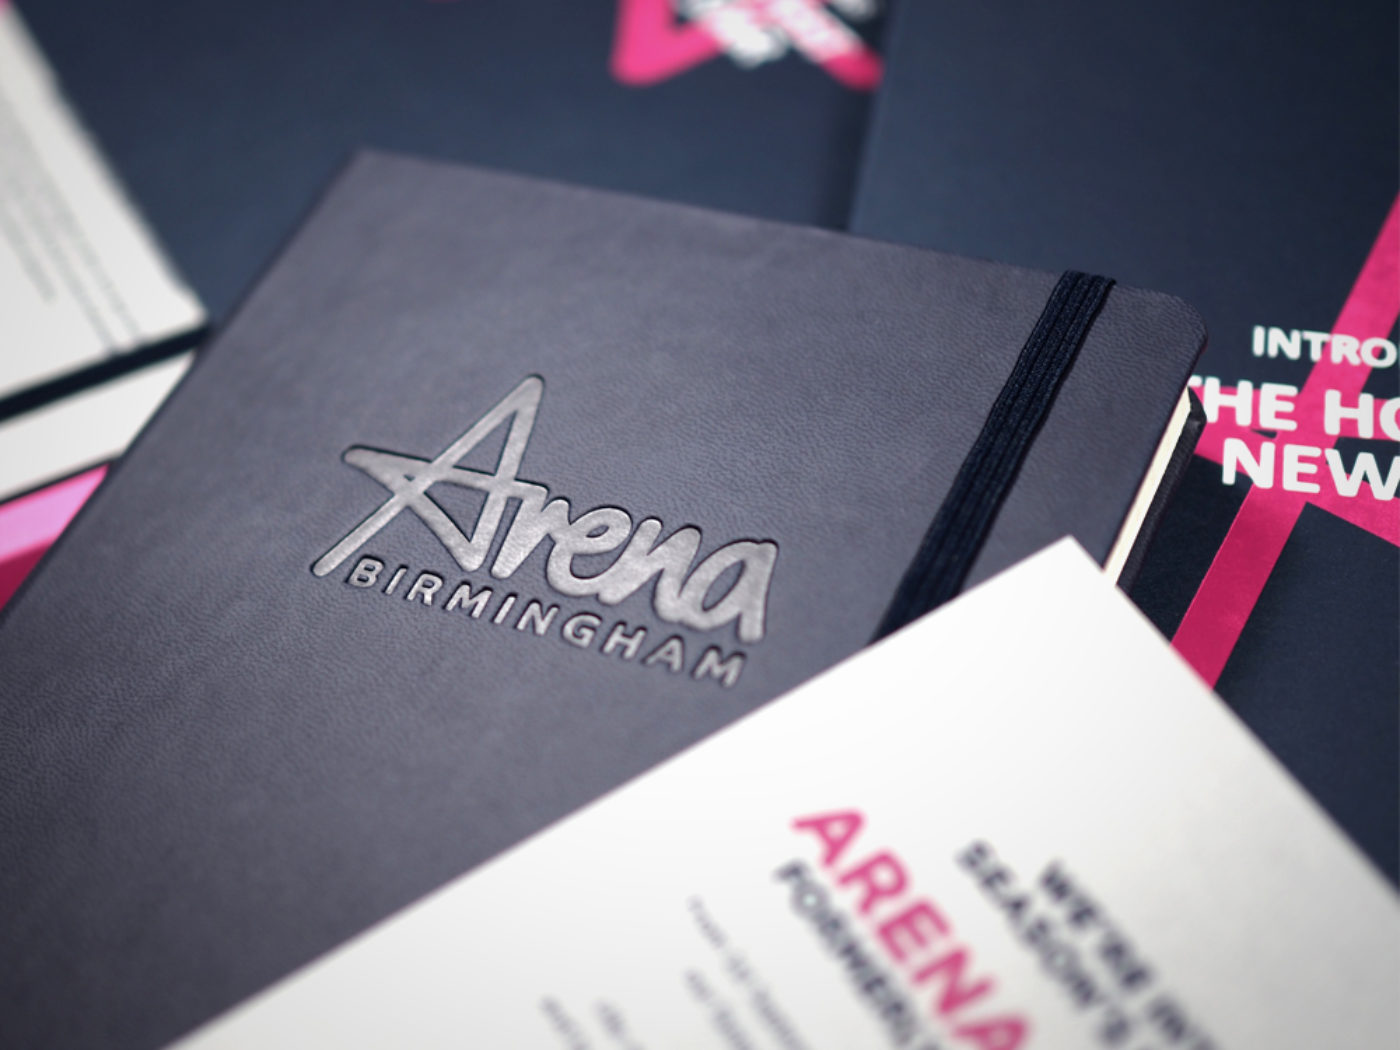 Arena Birmingham branded notebooks